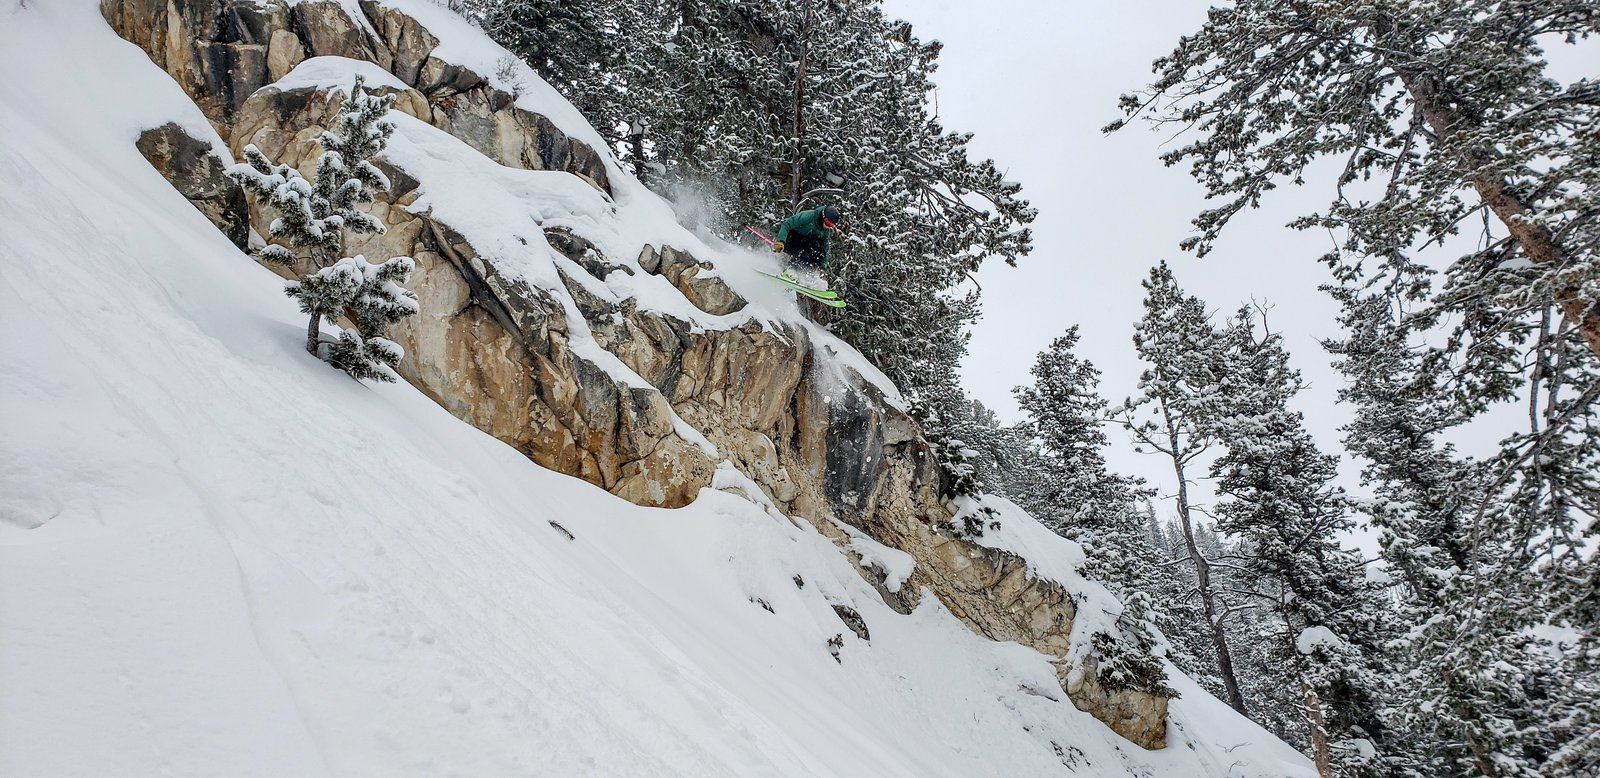 Canaveral Cliff in the Steep and Tall's at Solitude